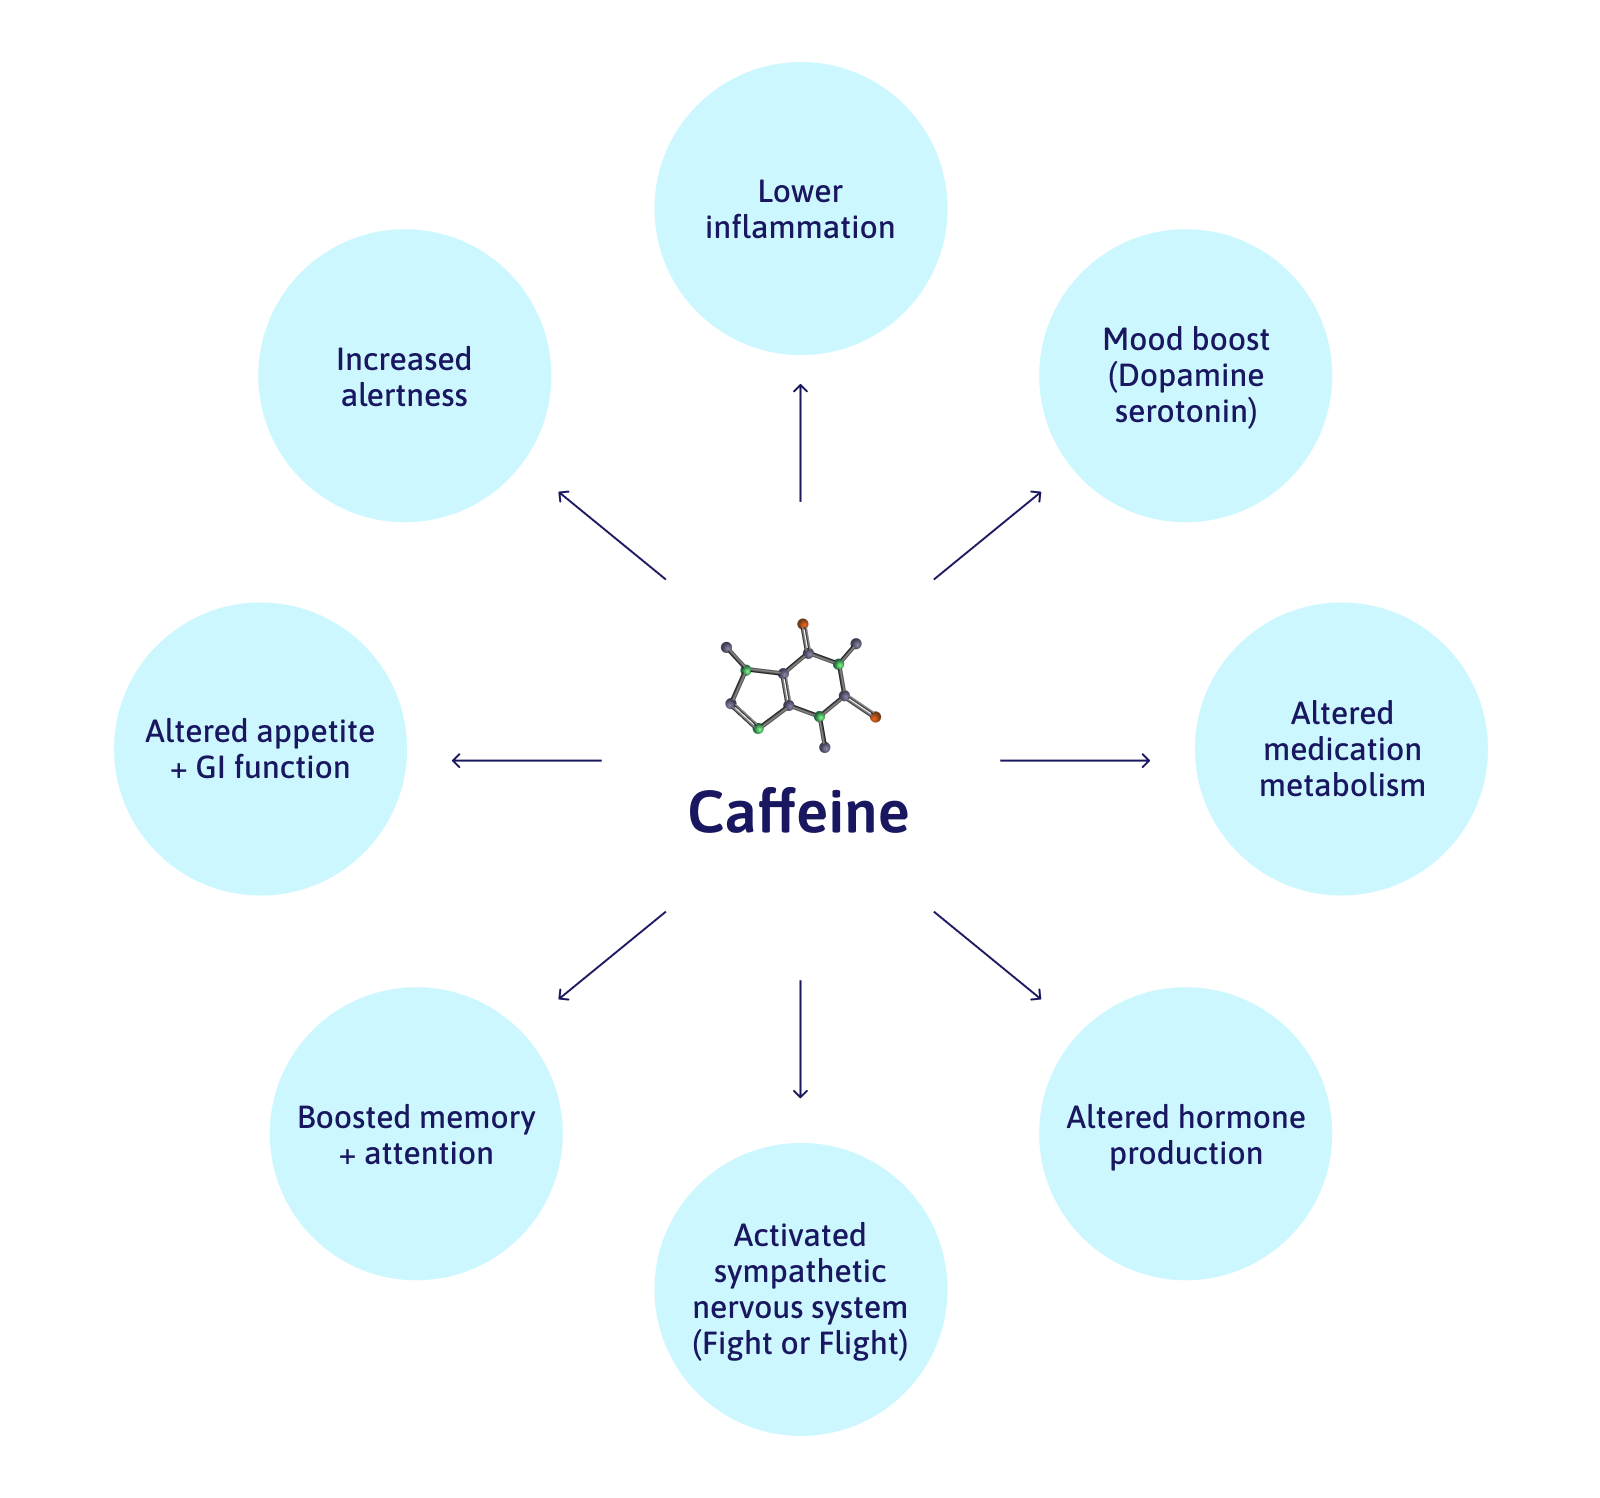 Caffeine: Lowers inflammation, increased alertness, boosted memory and attention, activated sympathetic nervous system (fight or flight), altered hormone production.